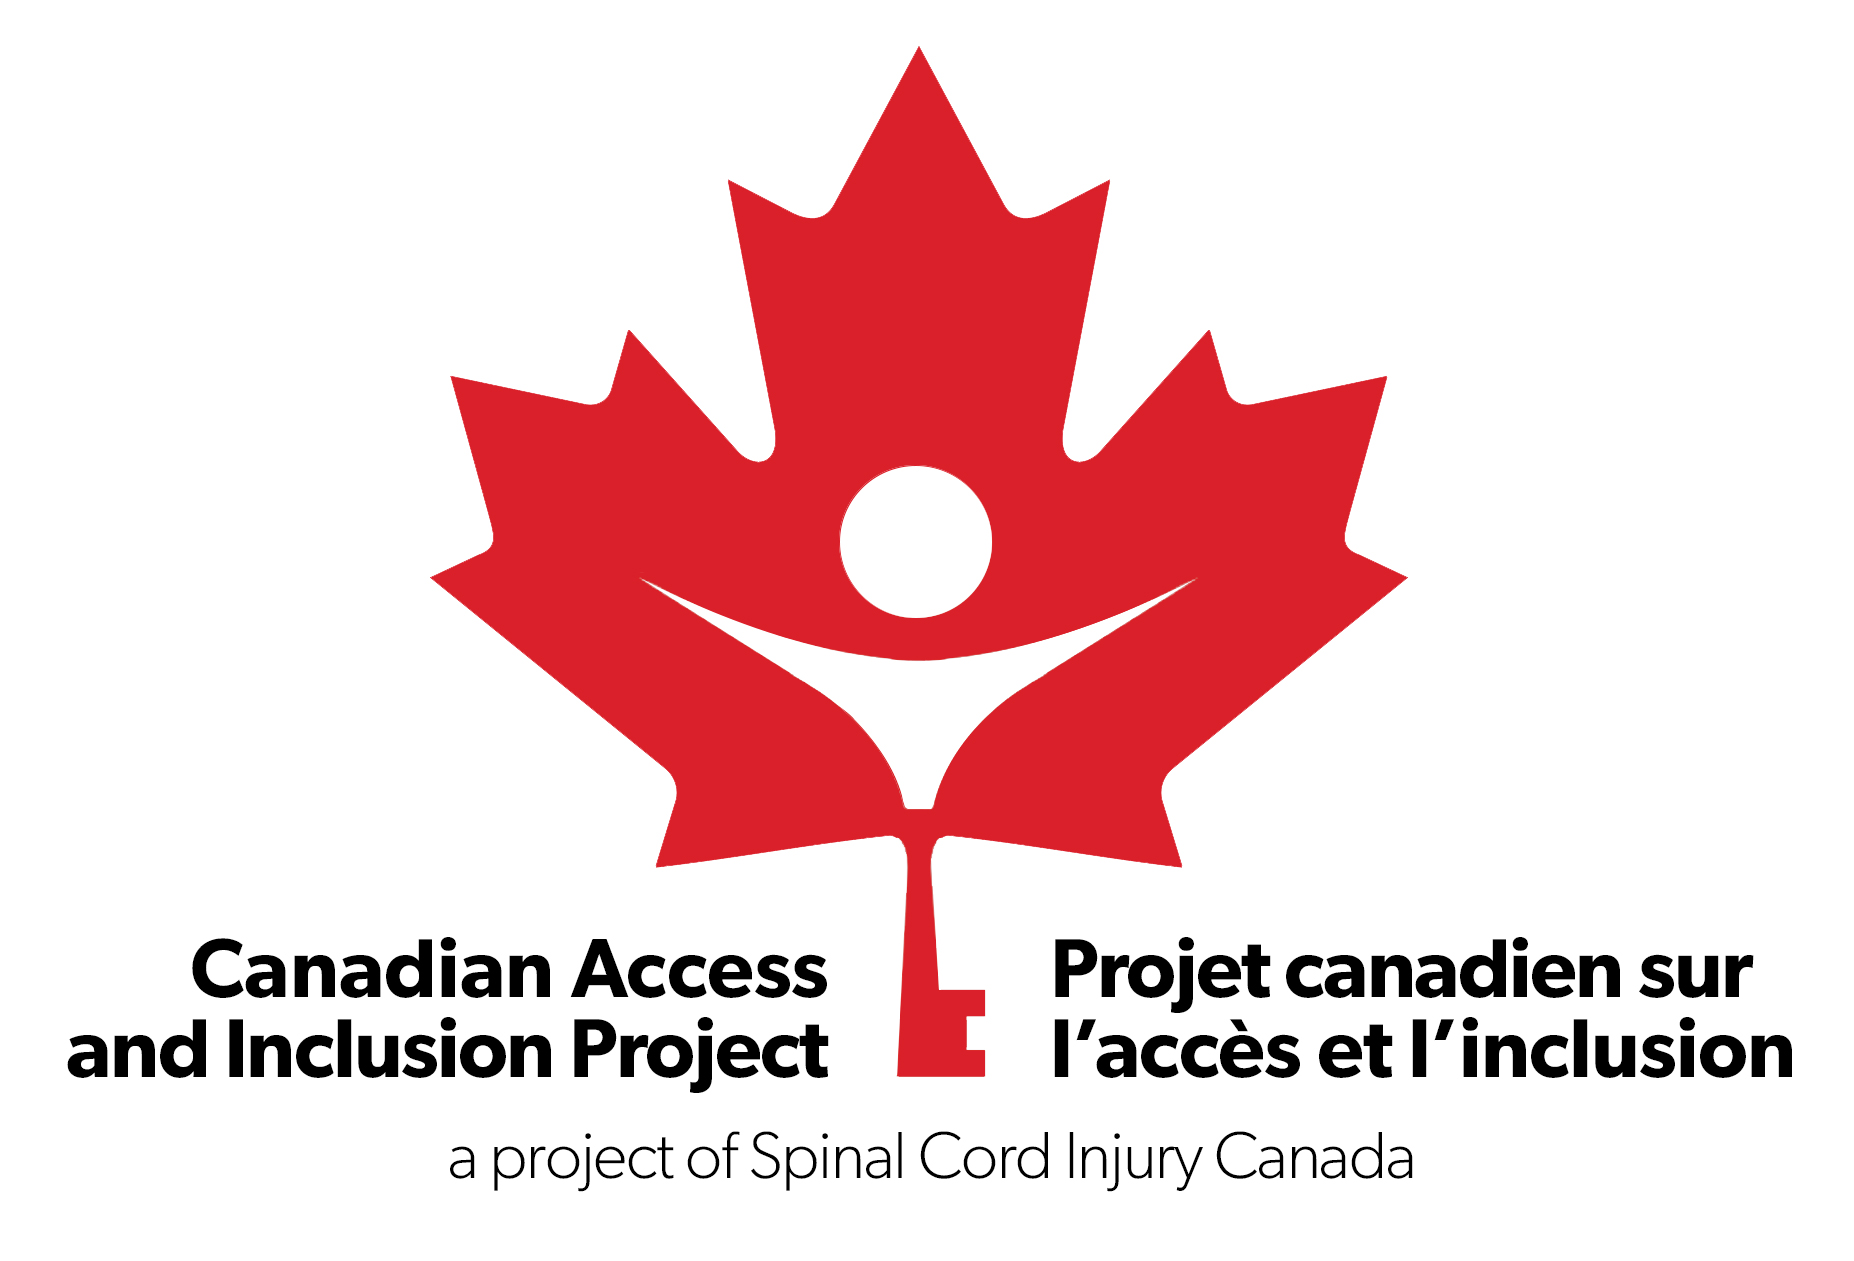 Canadian Access and Inclusion Project logo - maple leaf with a key on the stem